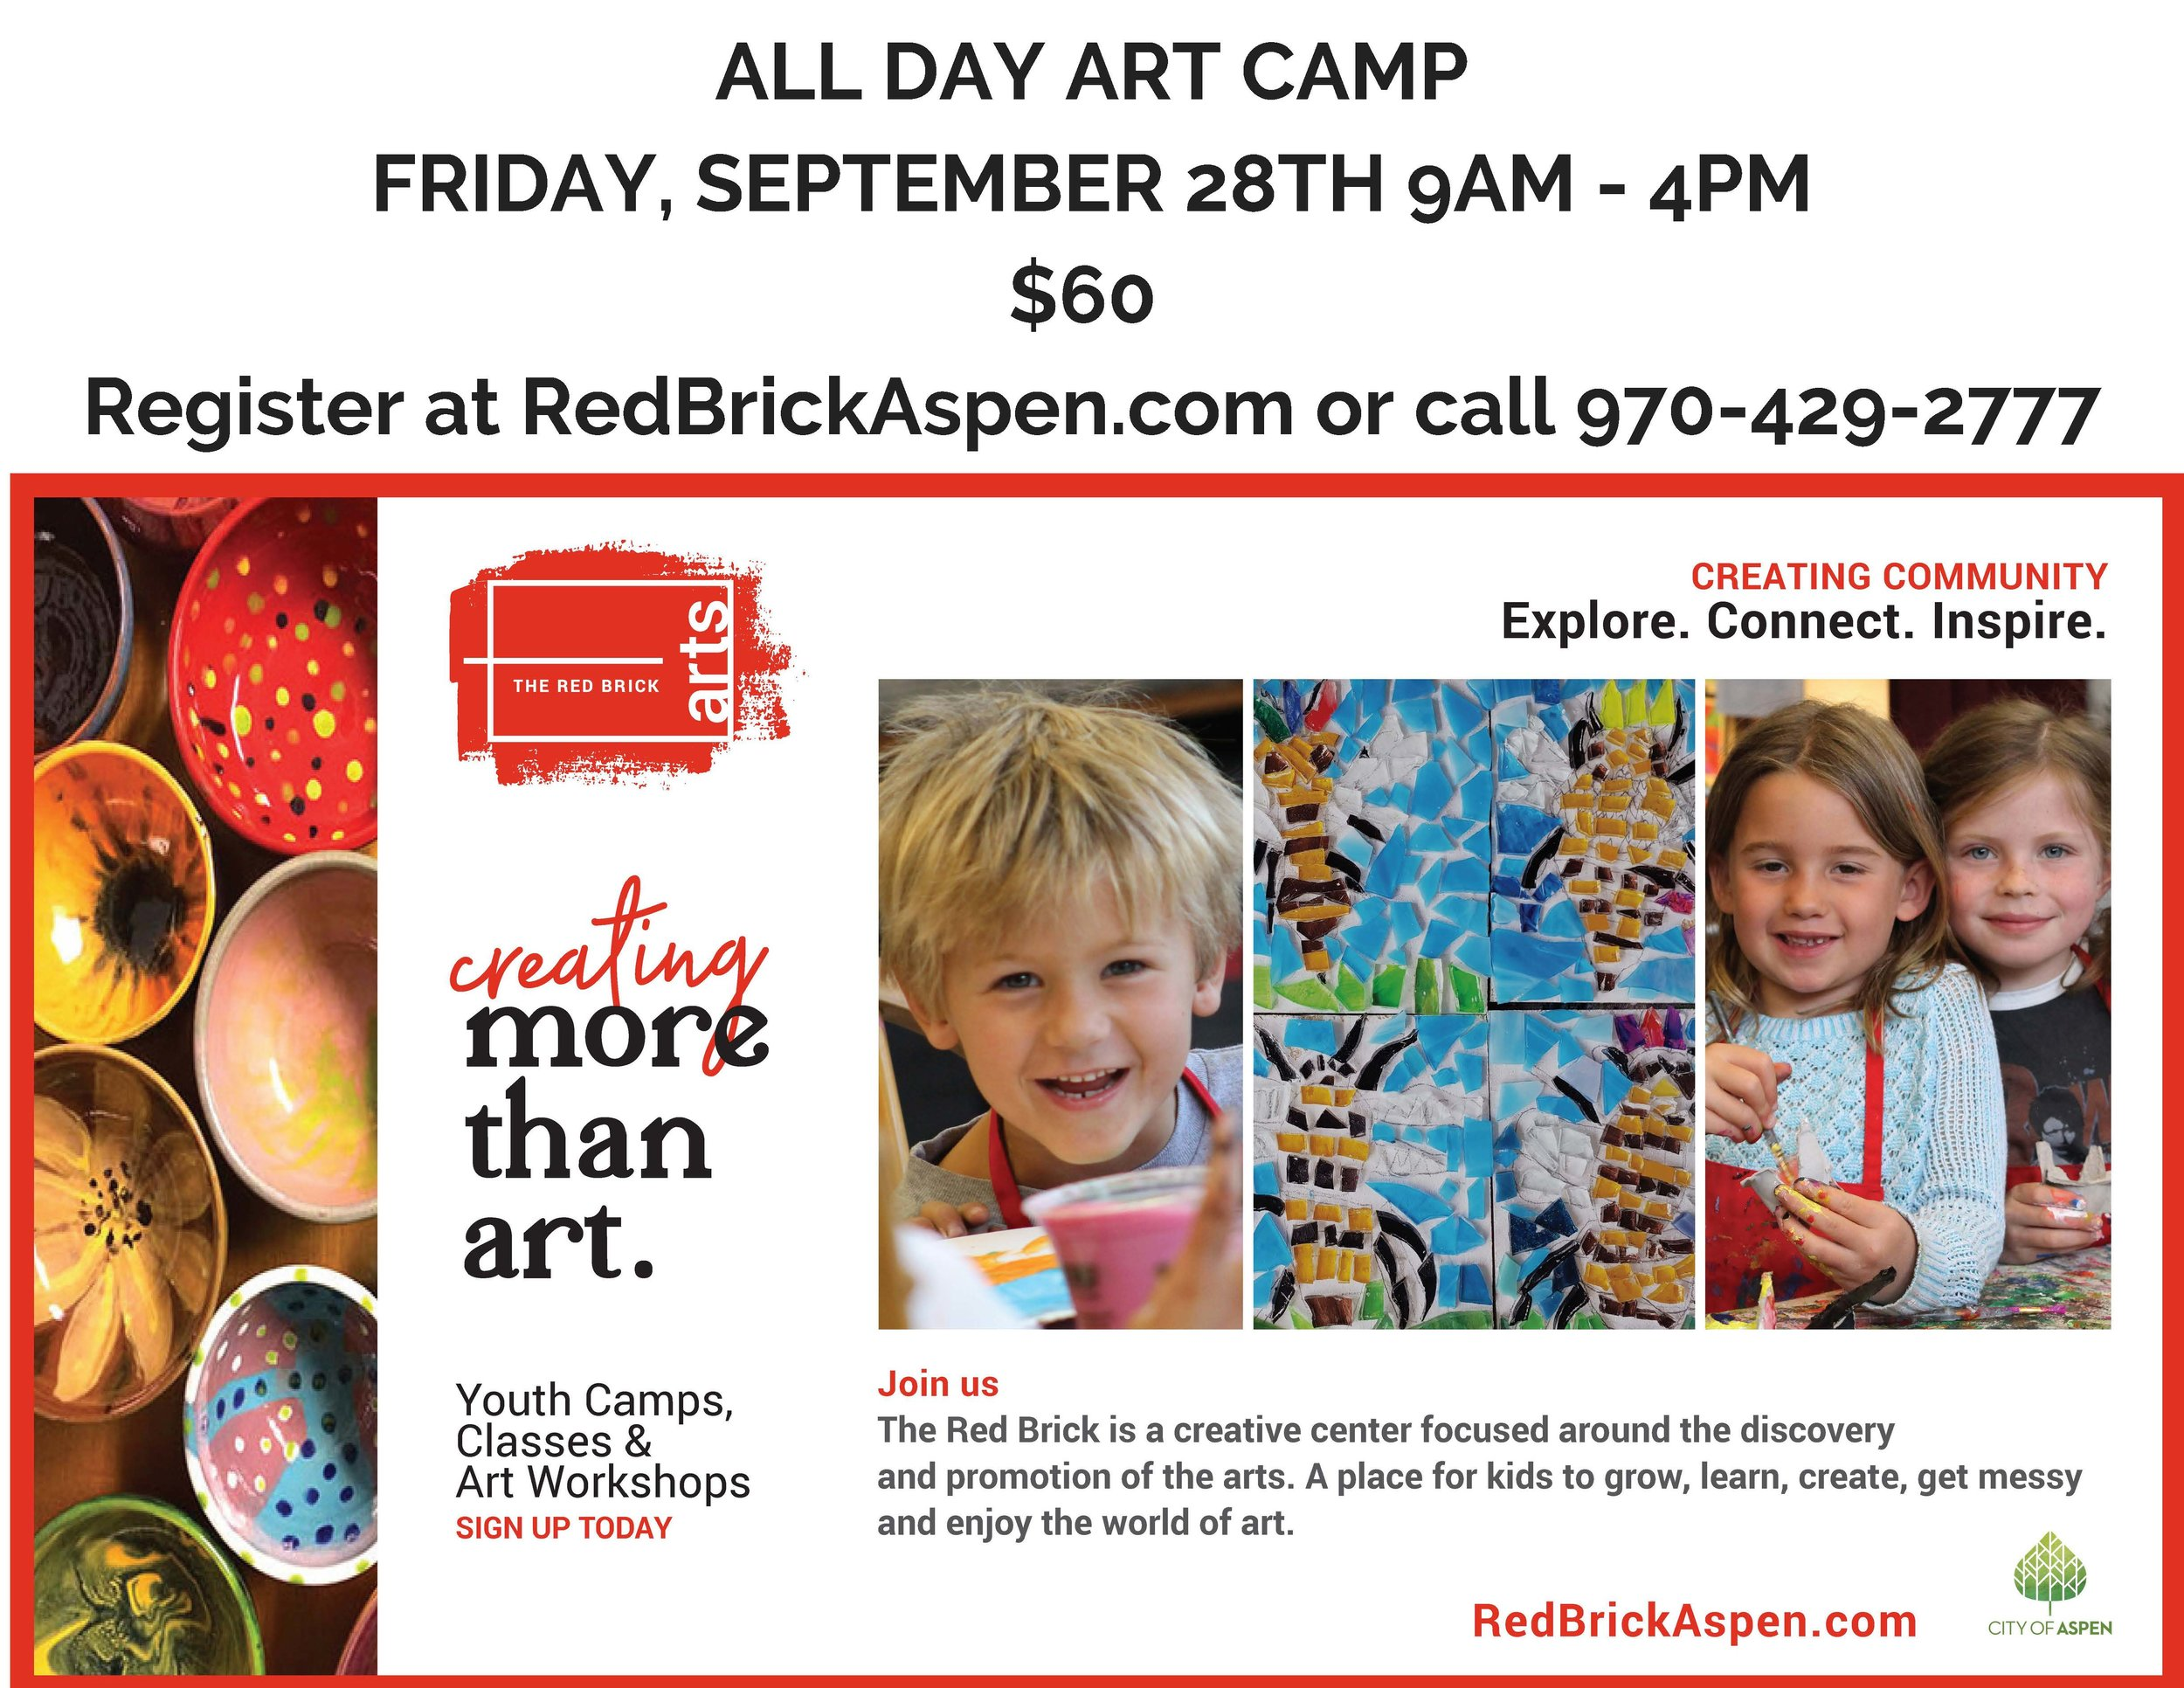 ALL DAY ART CAMPFRIDAY, SEPTEMBER 28TH 9AM - 4PM$60.jpg